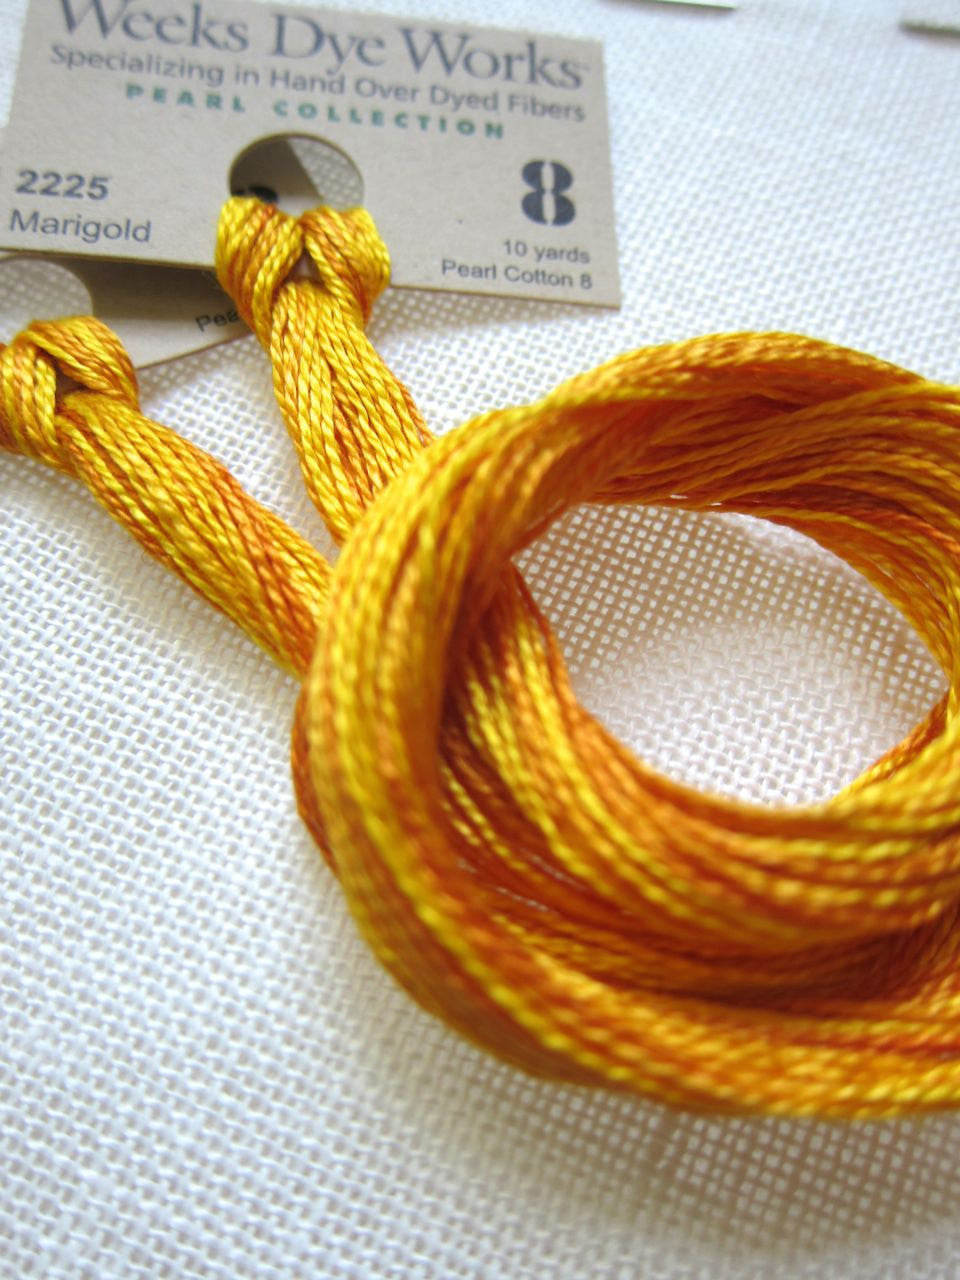 Weeks Dye Works Hand Over-Dyed Pearl Cotton - Size 8 Marigold Perle Cotton - Snuggly Monkey